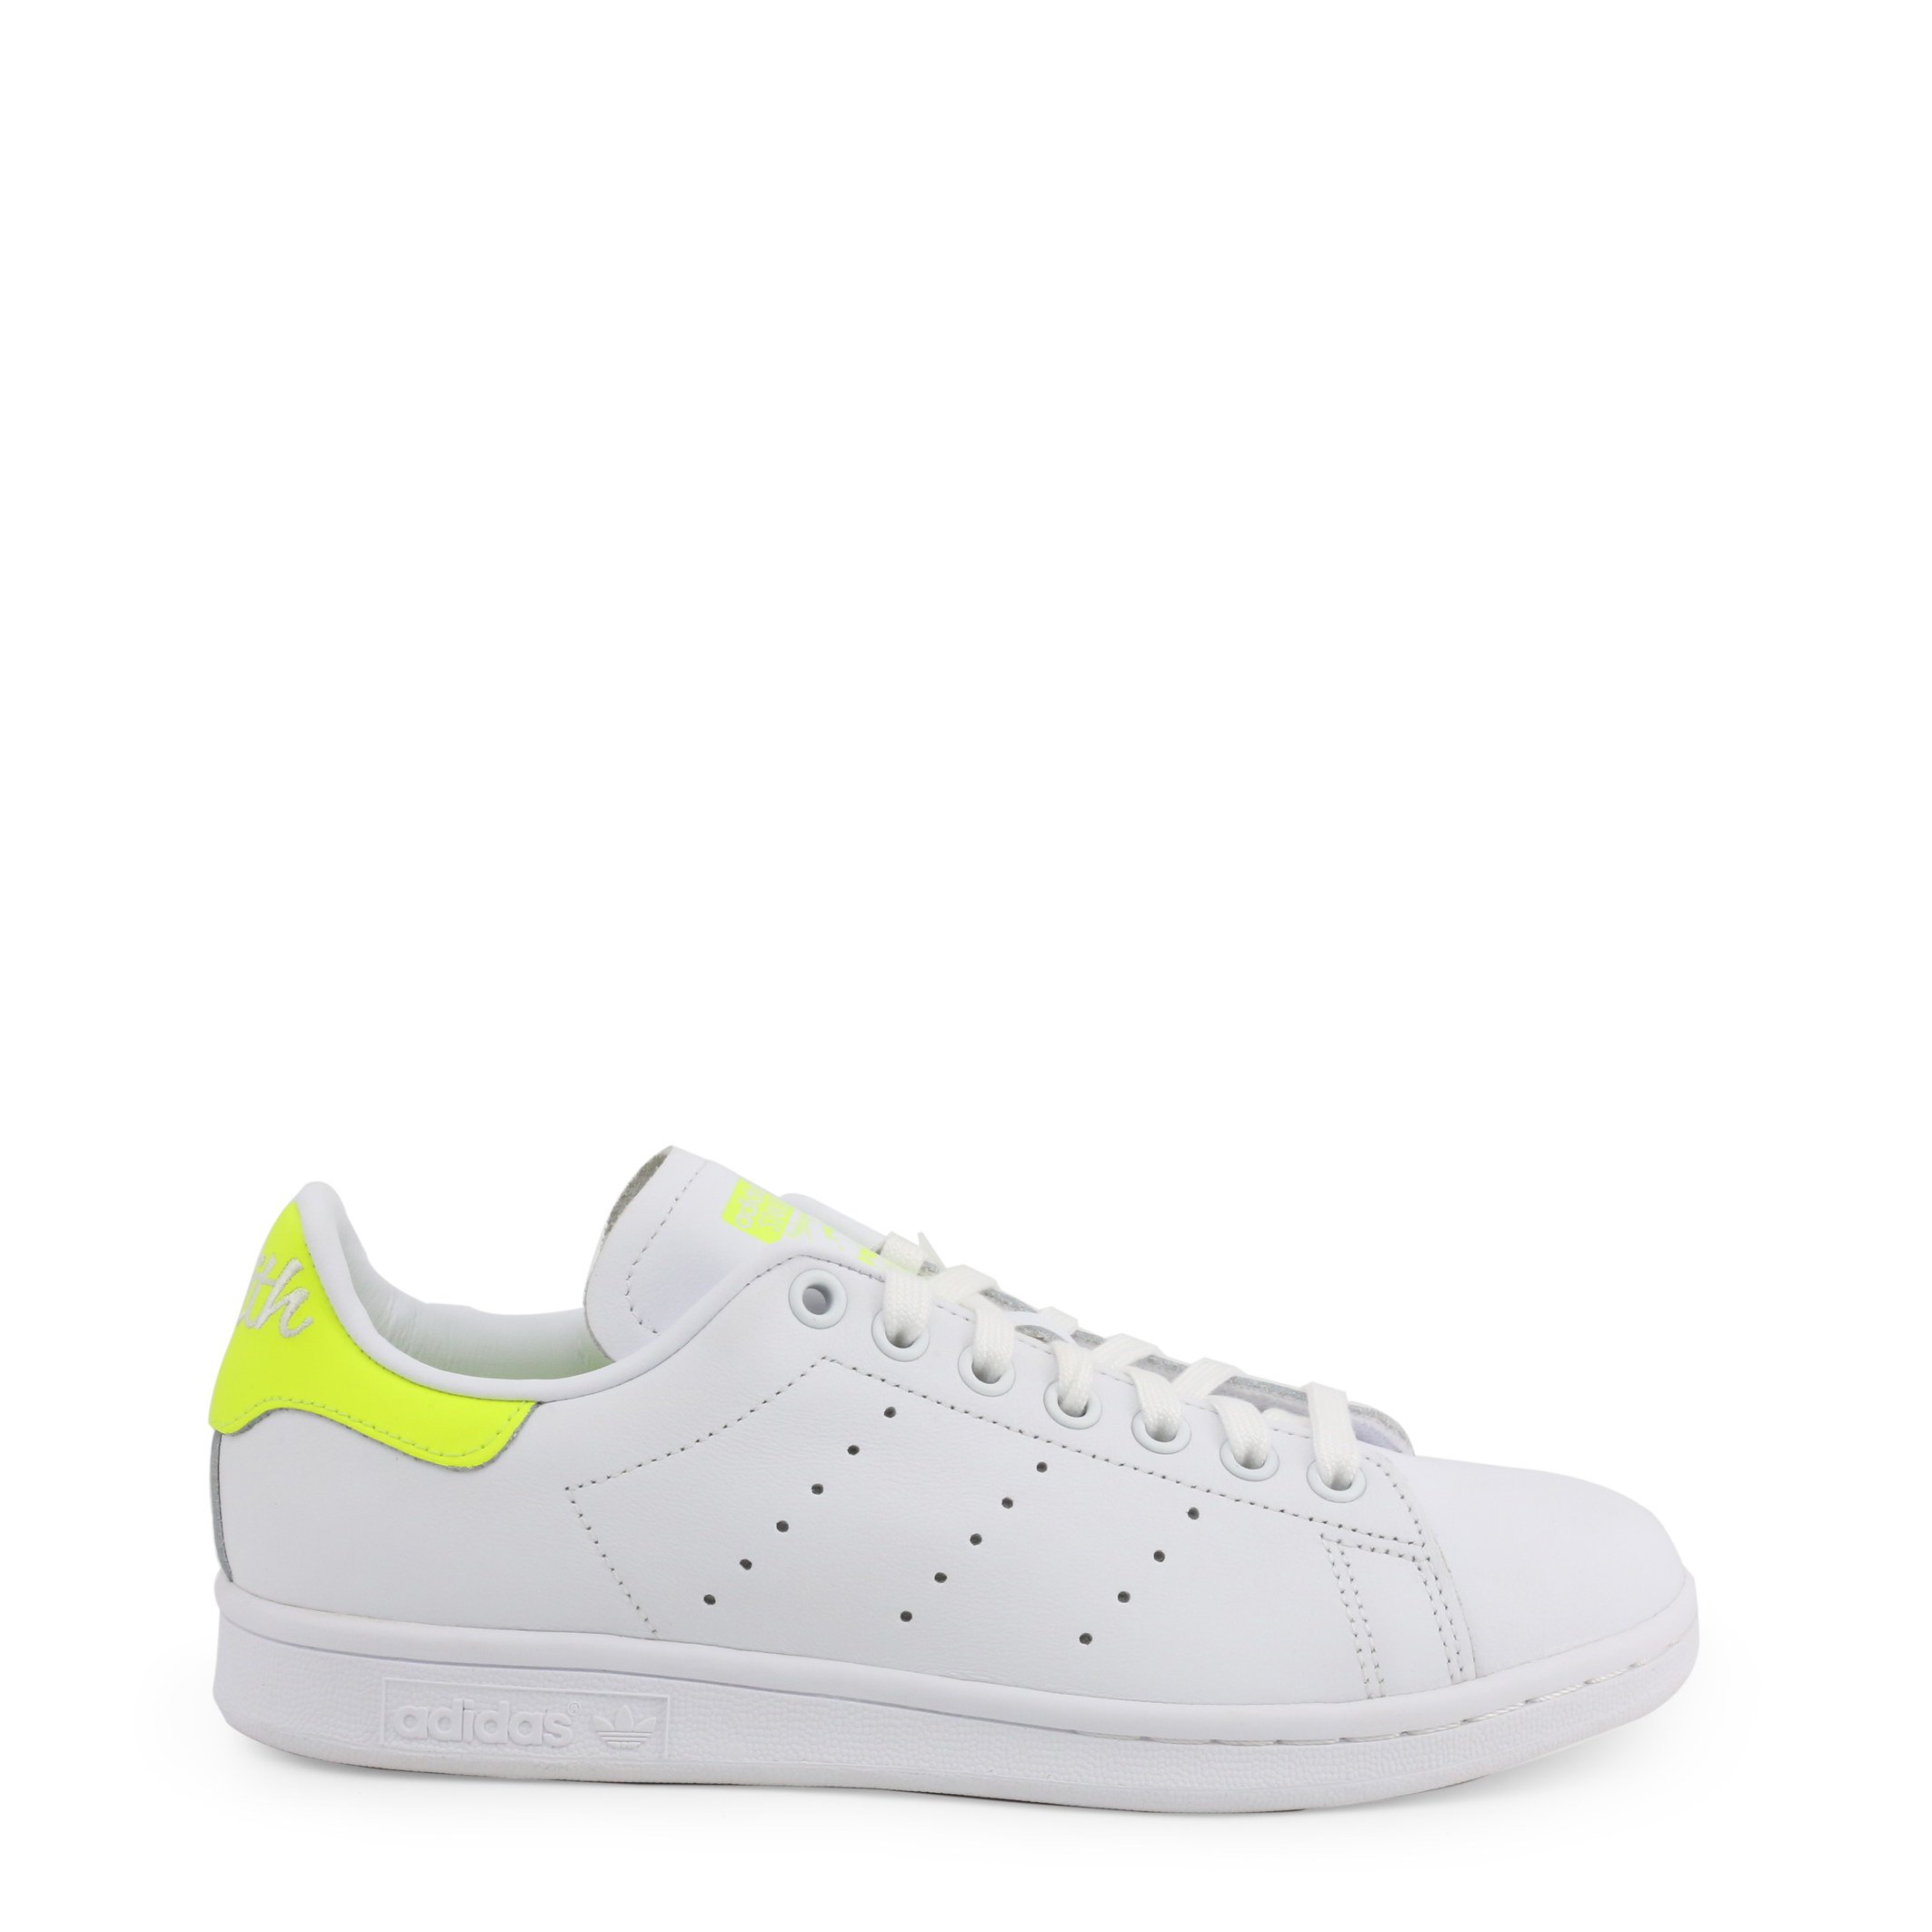 Chaussures   Adidas StanSmith white